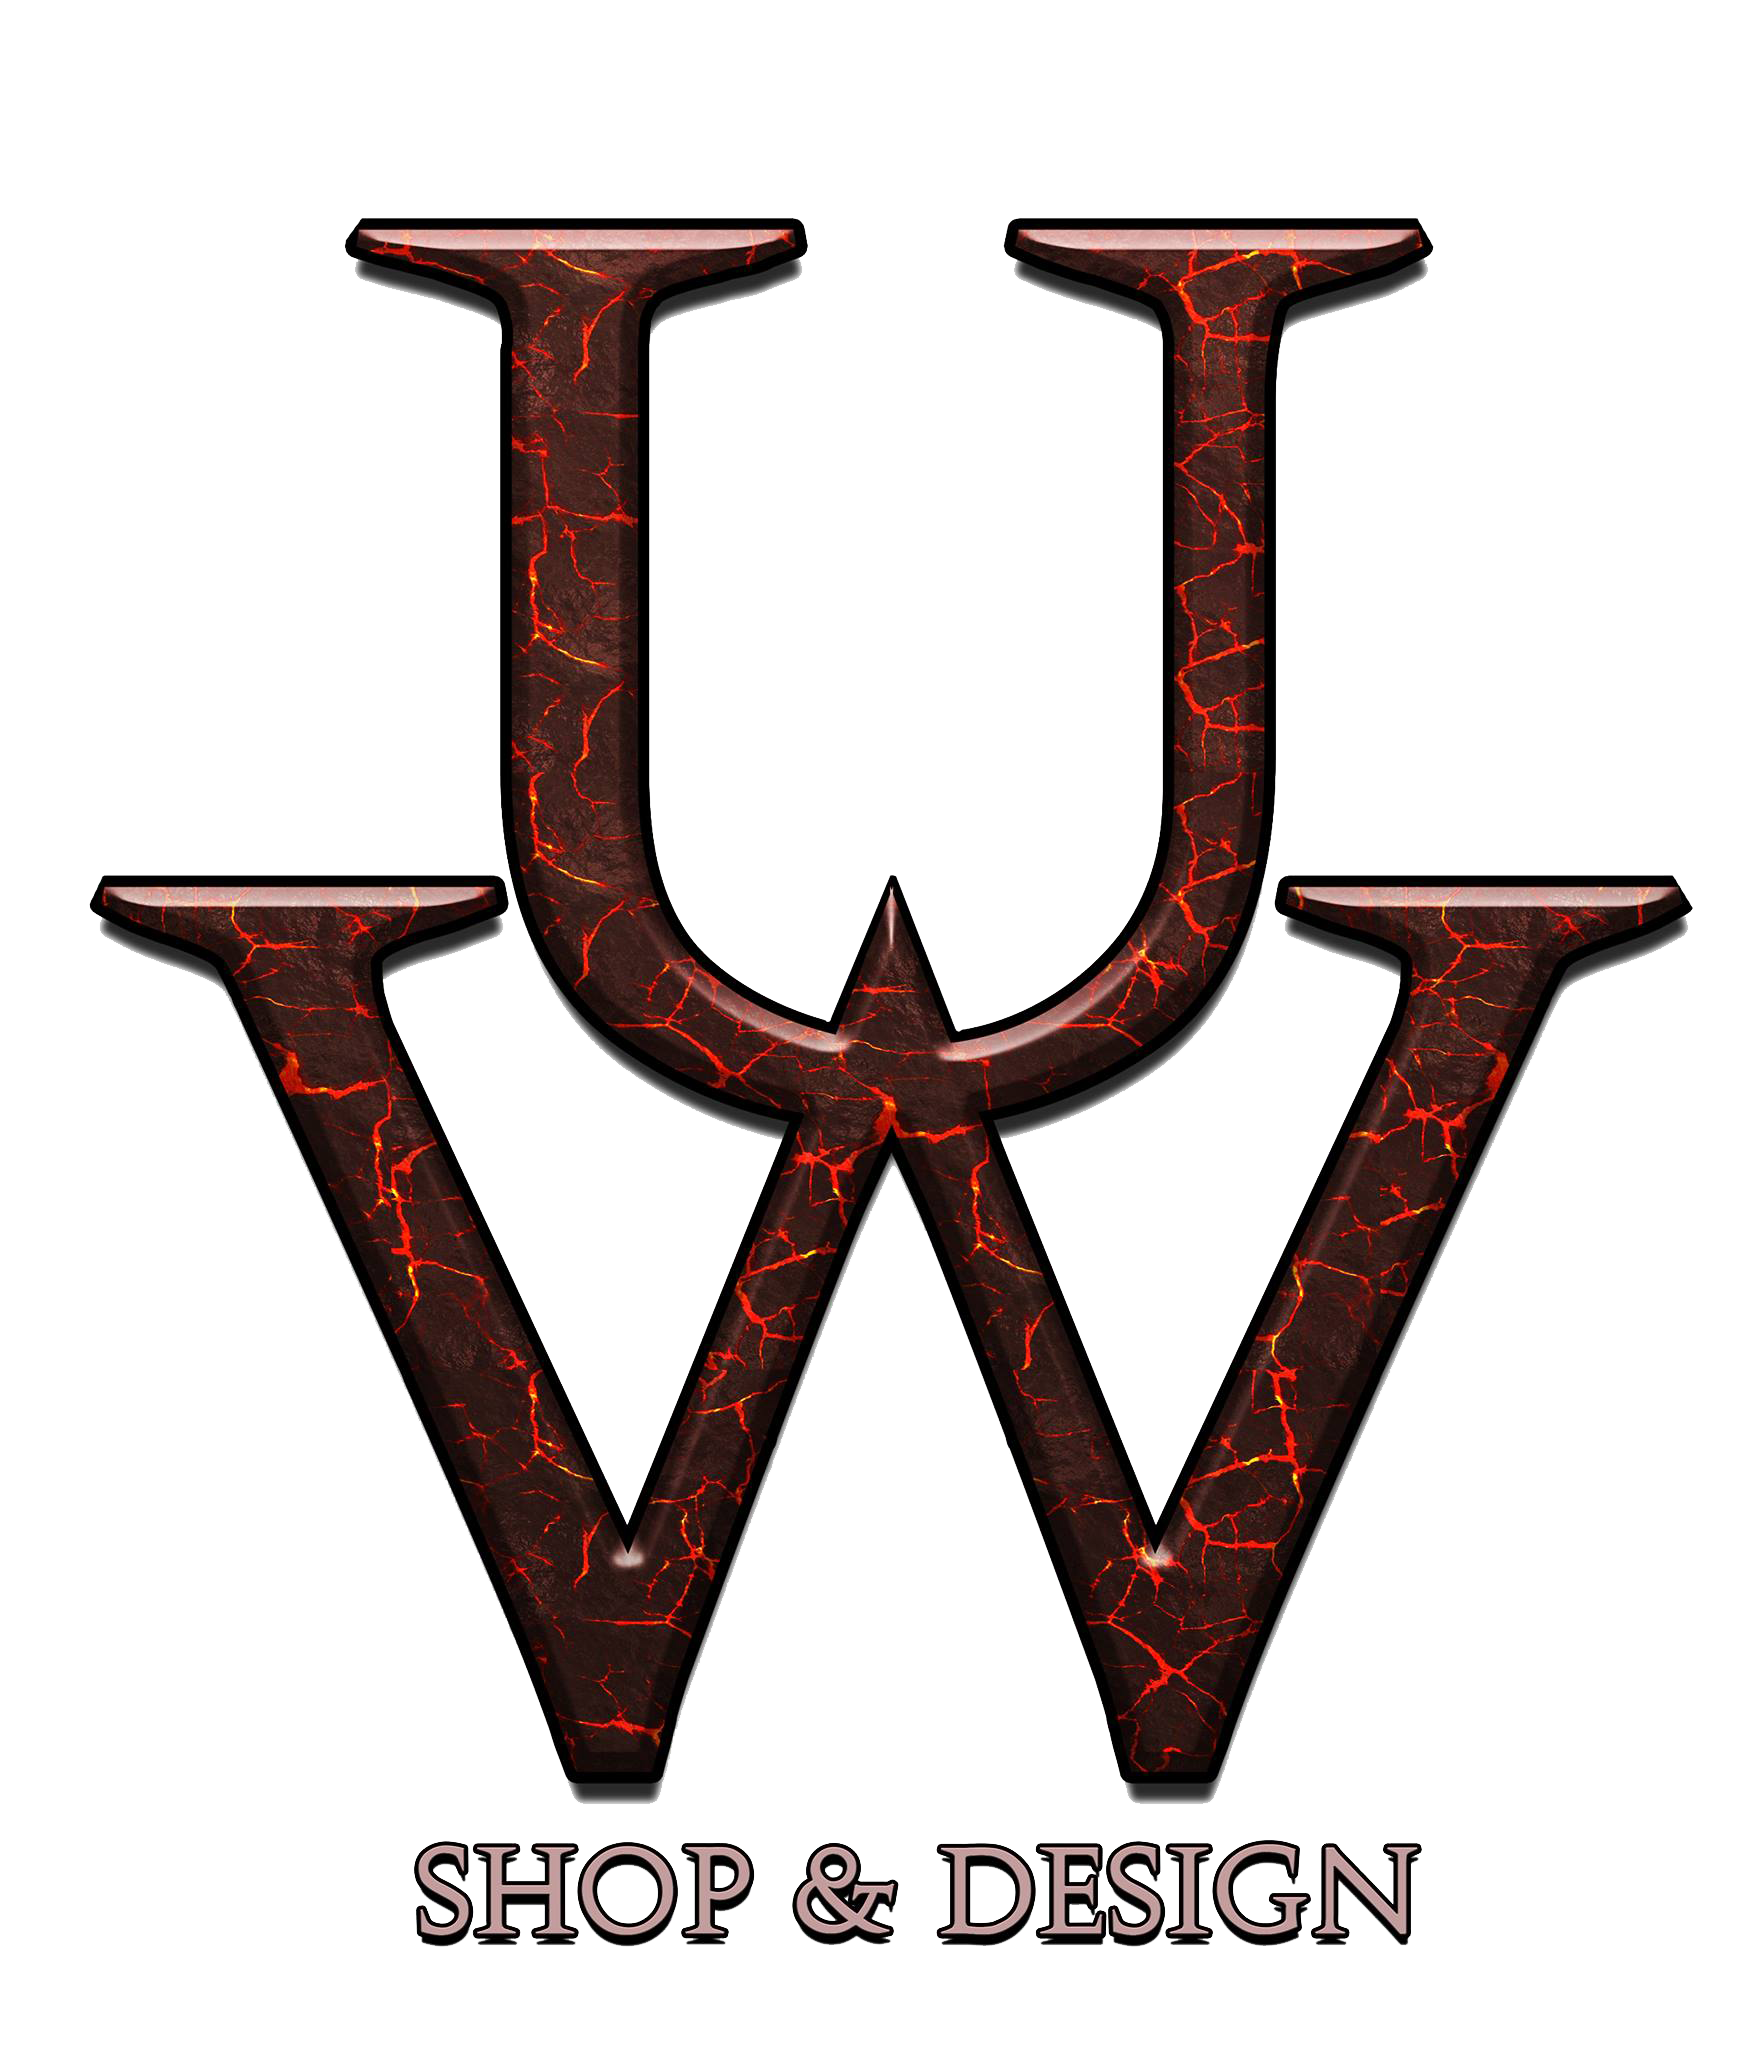 Underworld Shop & Design